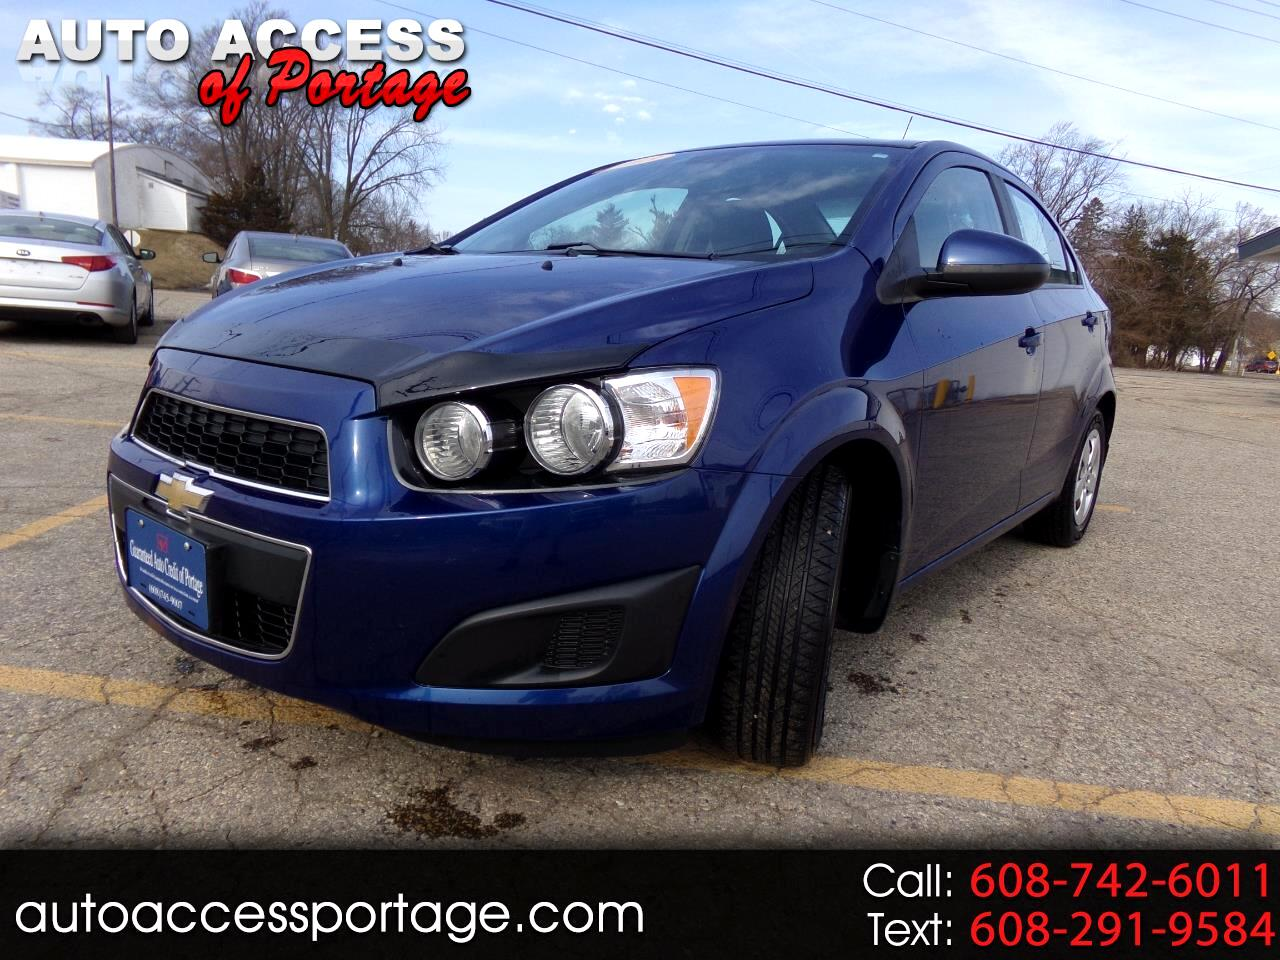 2013 Chevrolet Sonic 4dr Sdn Manual LS